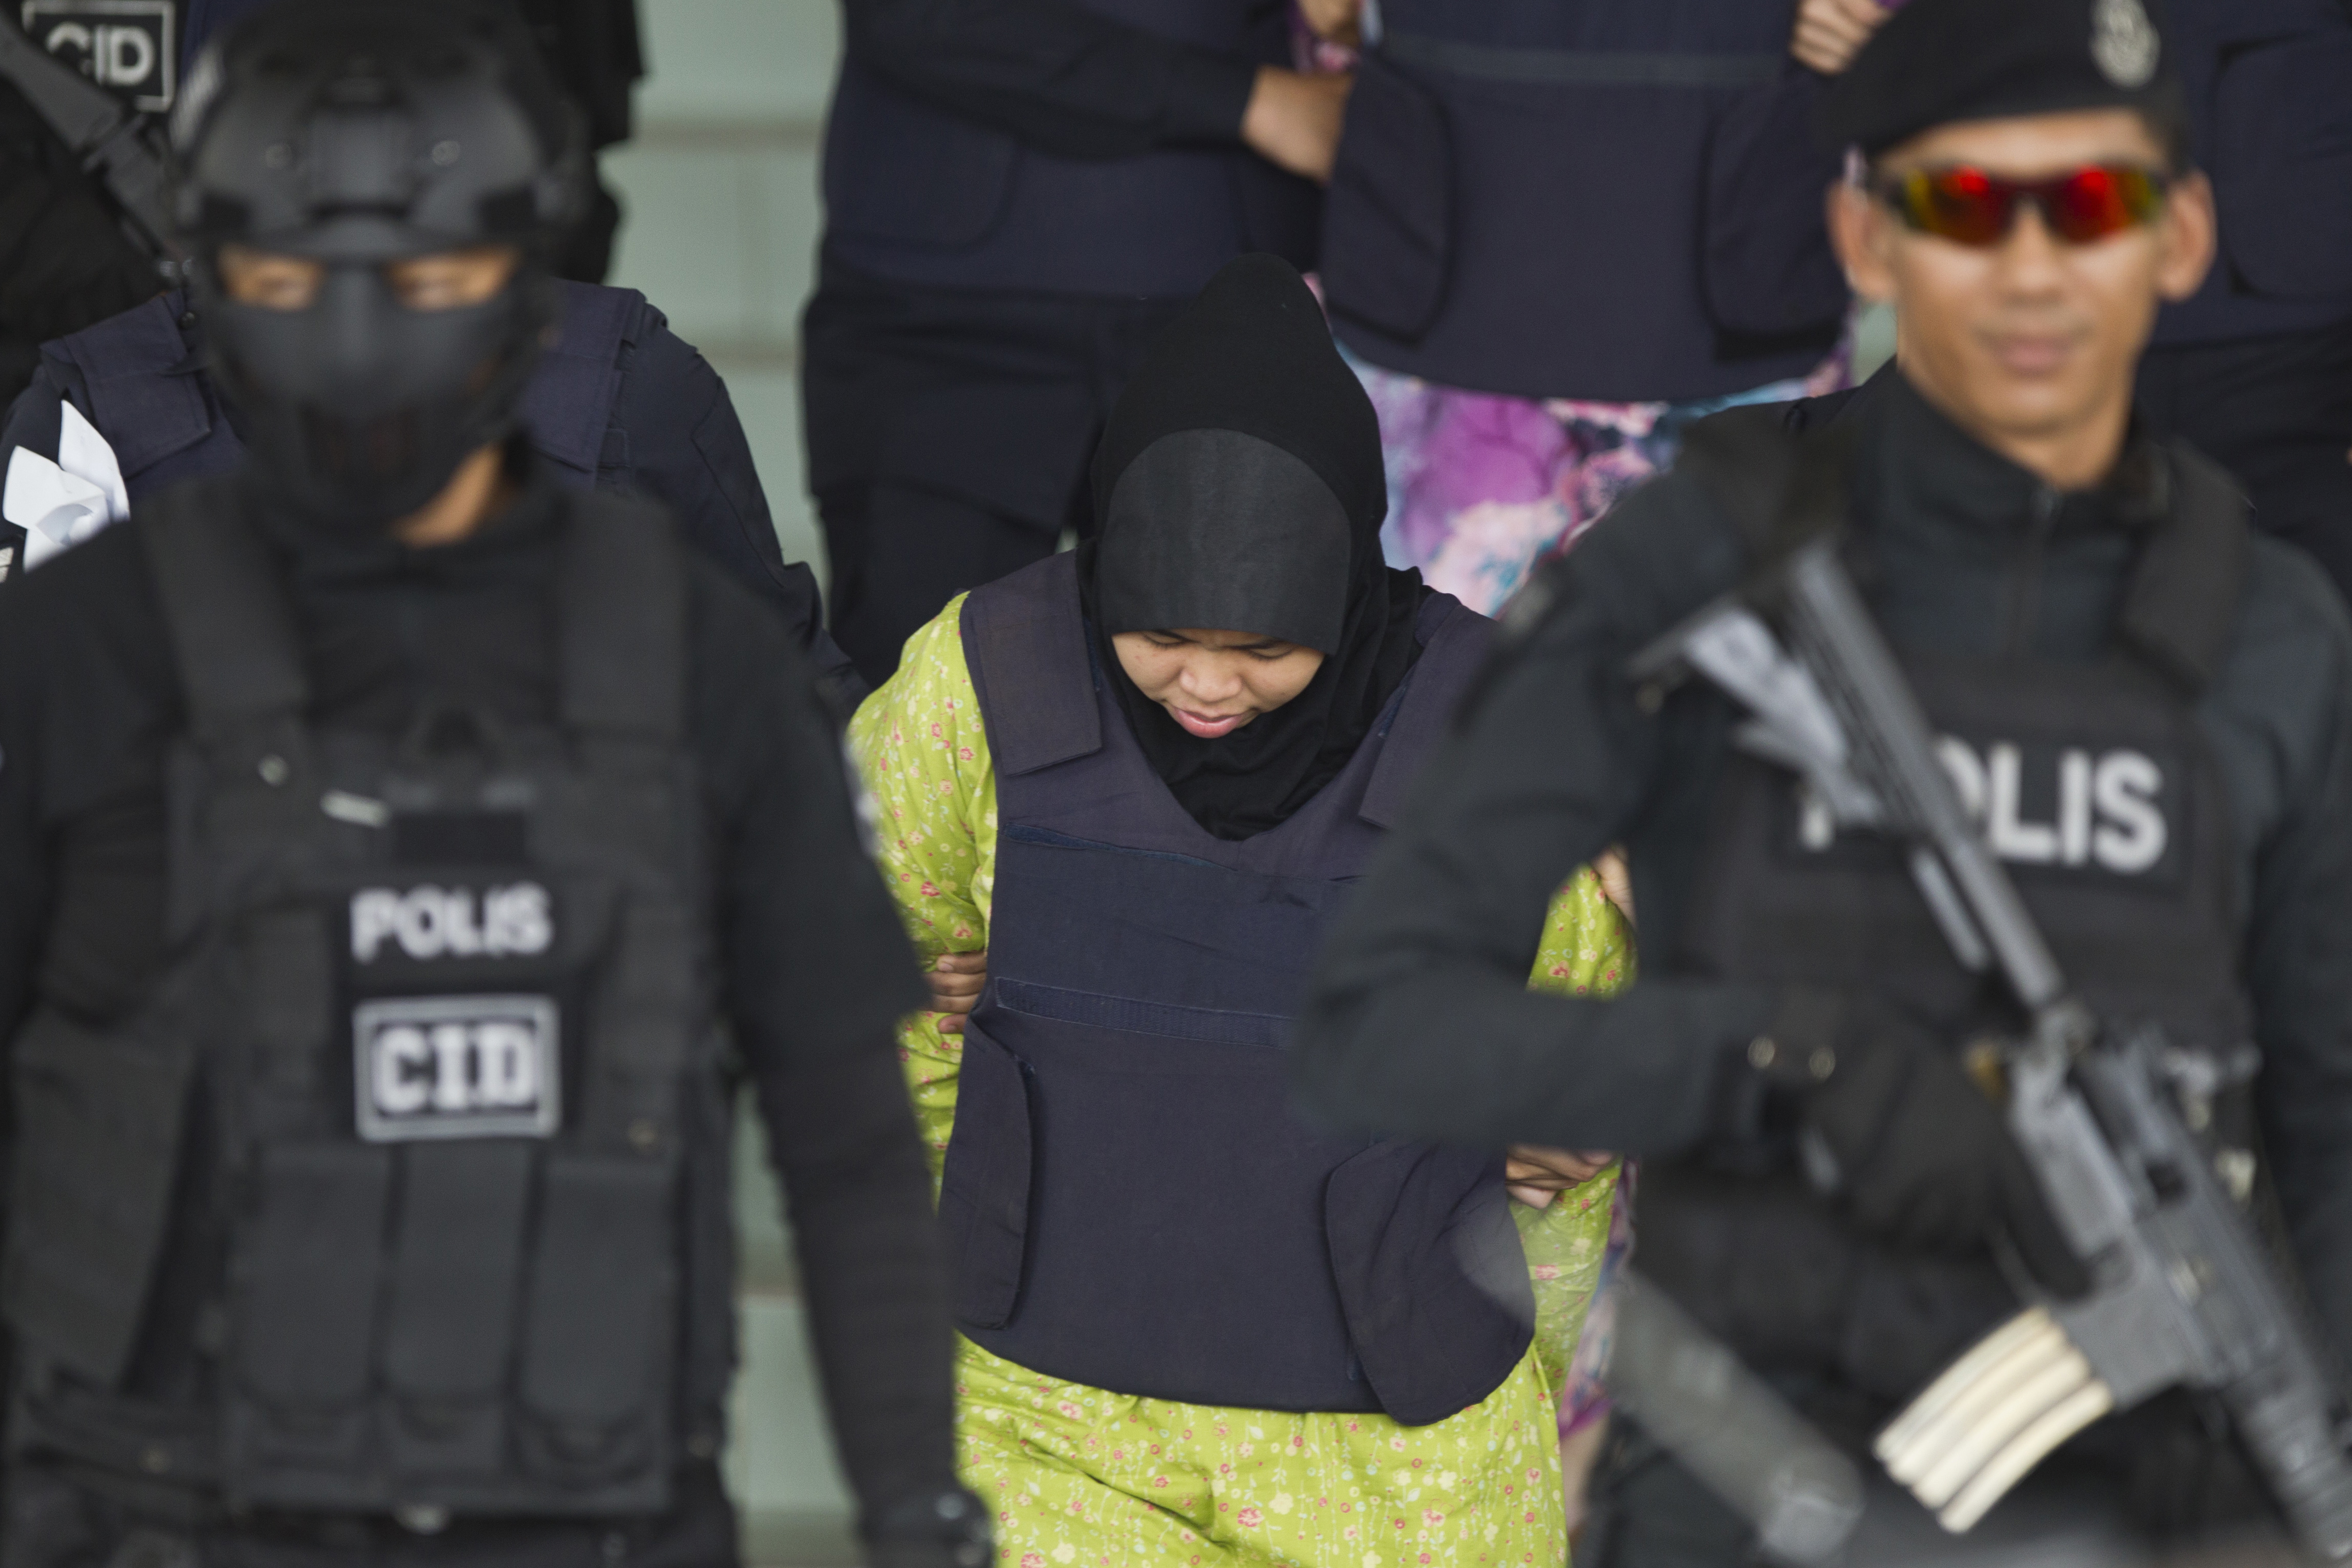 Indonesian Siti Aisyah is escorted by police as she leaves the Shah Alam High Court after a hearing in Shah Alam, Malaysia, Wednesday, Nov. 7, 2018. A Malaysian court on Wednesday set Jan 7 for two Southeast Asian women charged with murdering the North Korean leader's half brother to begin their defense, as their lawyers complained that some witnesses were unreachable. (AP Photo/Yam G-Jun)